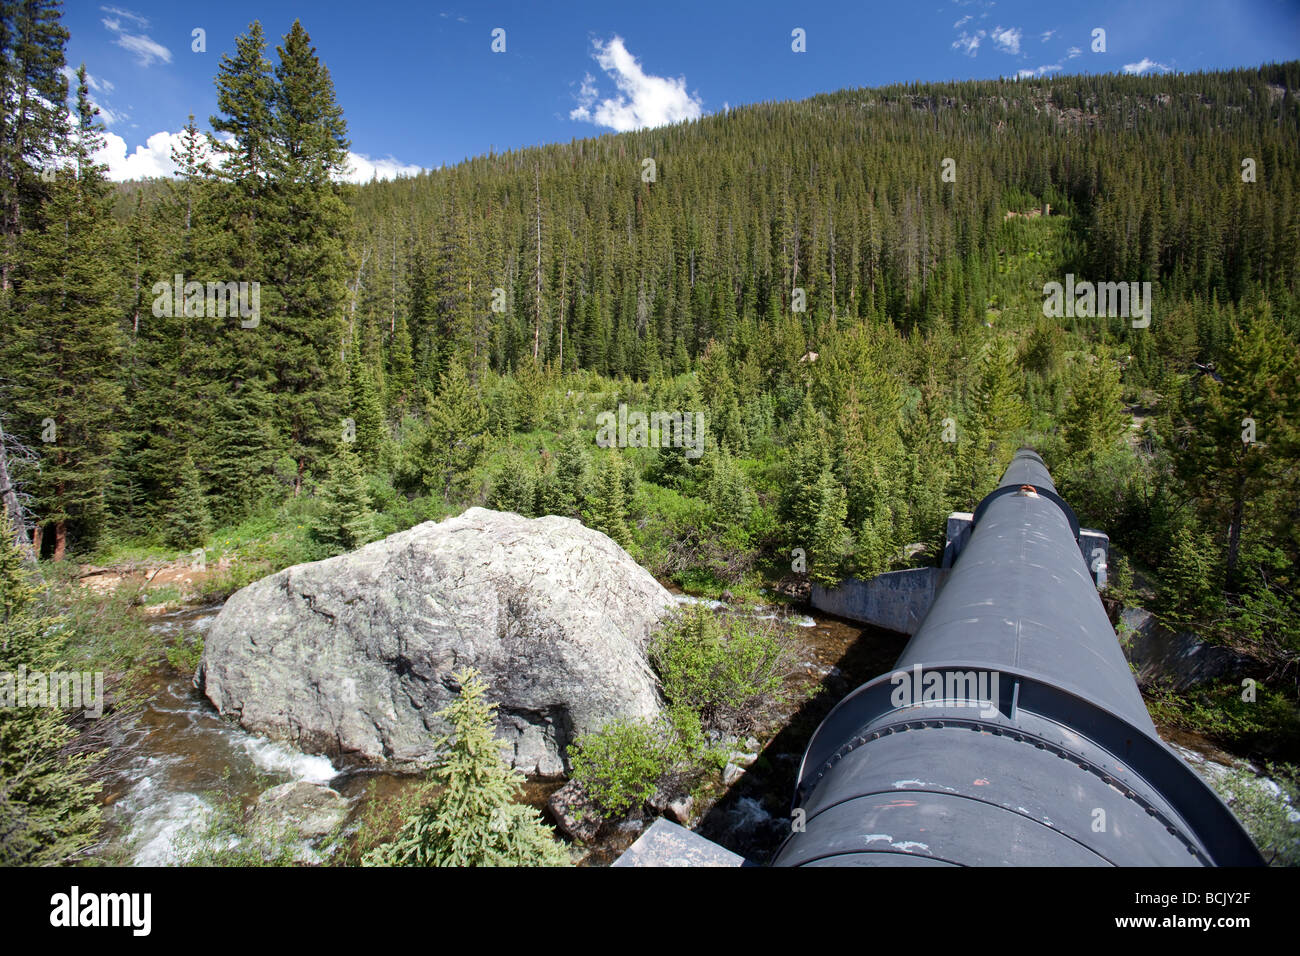 Water Diversion Pipeline - Stock Image